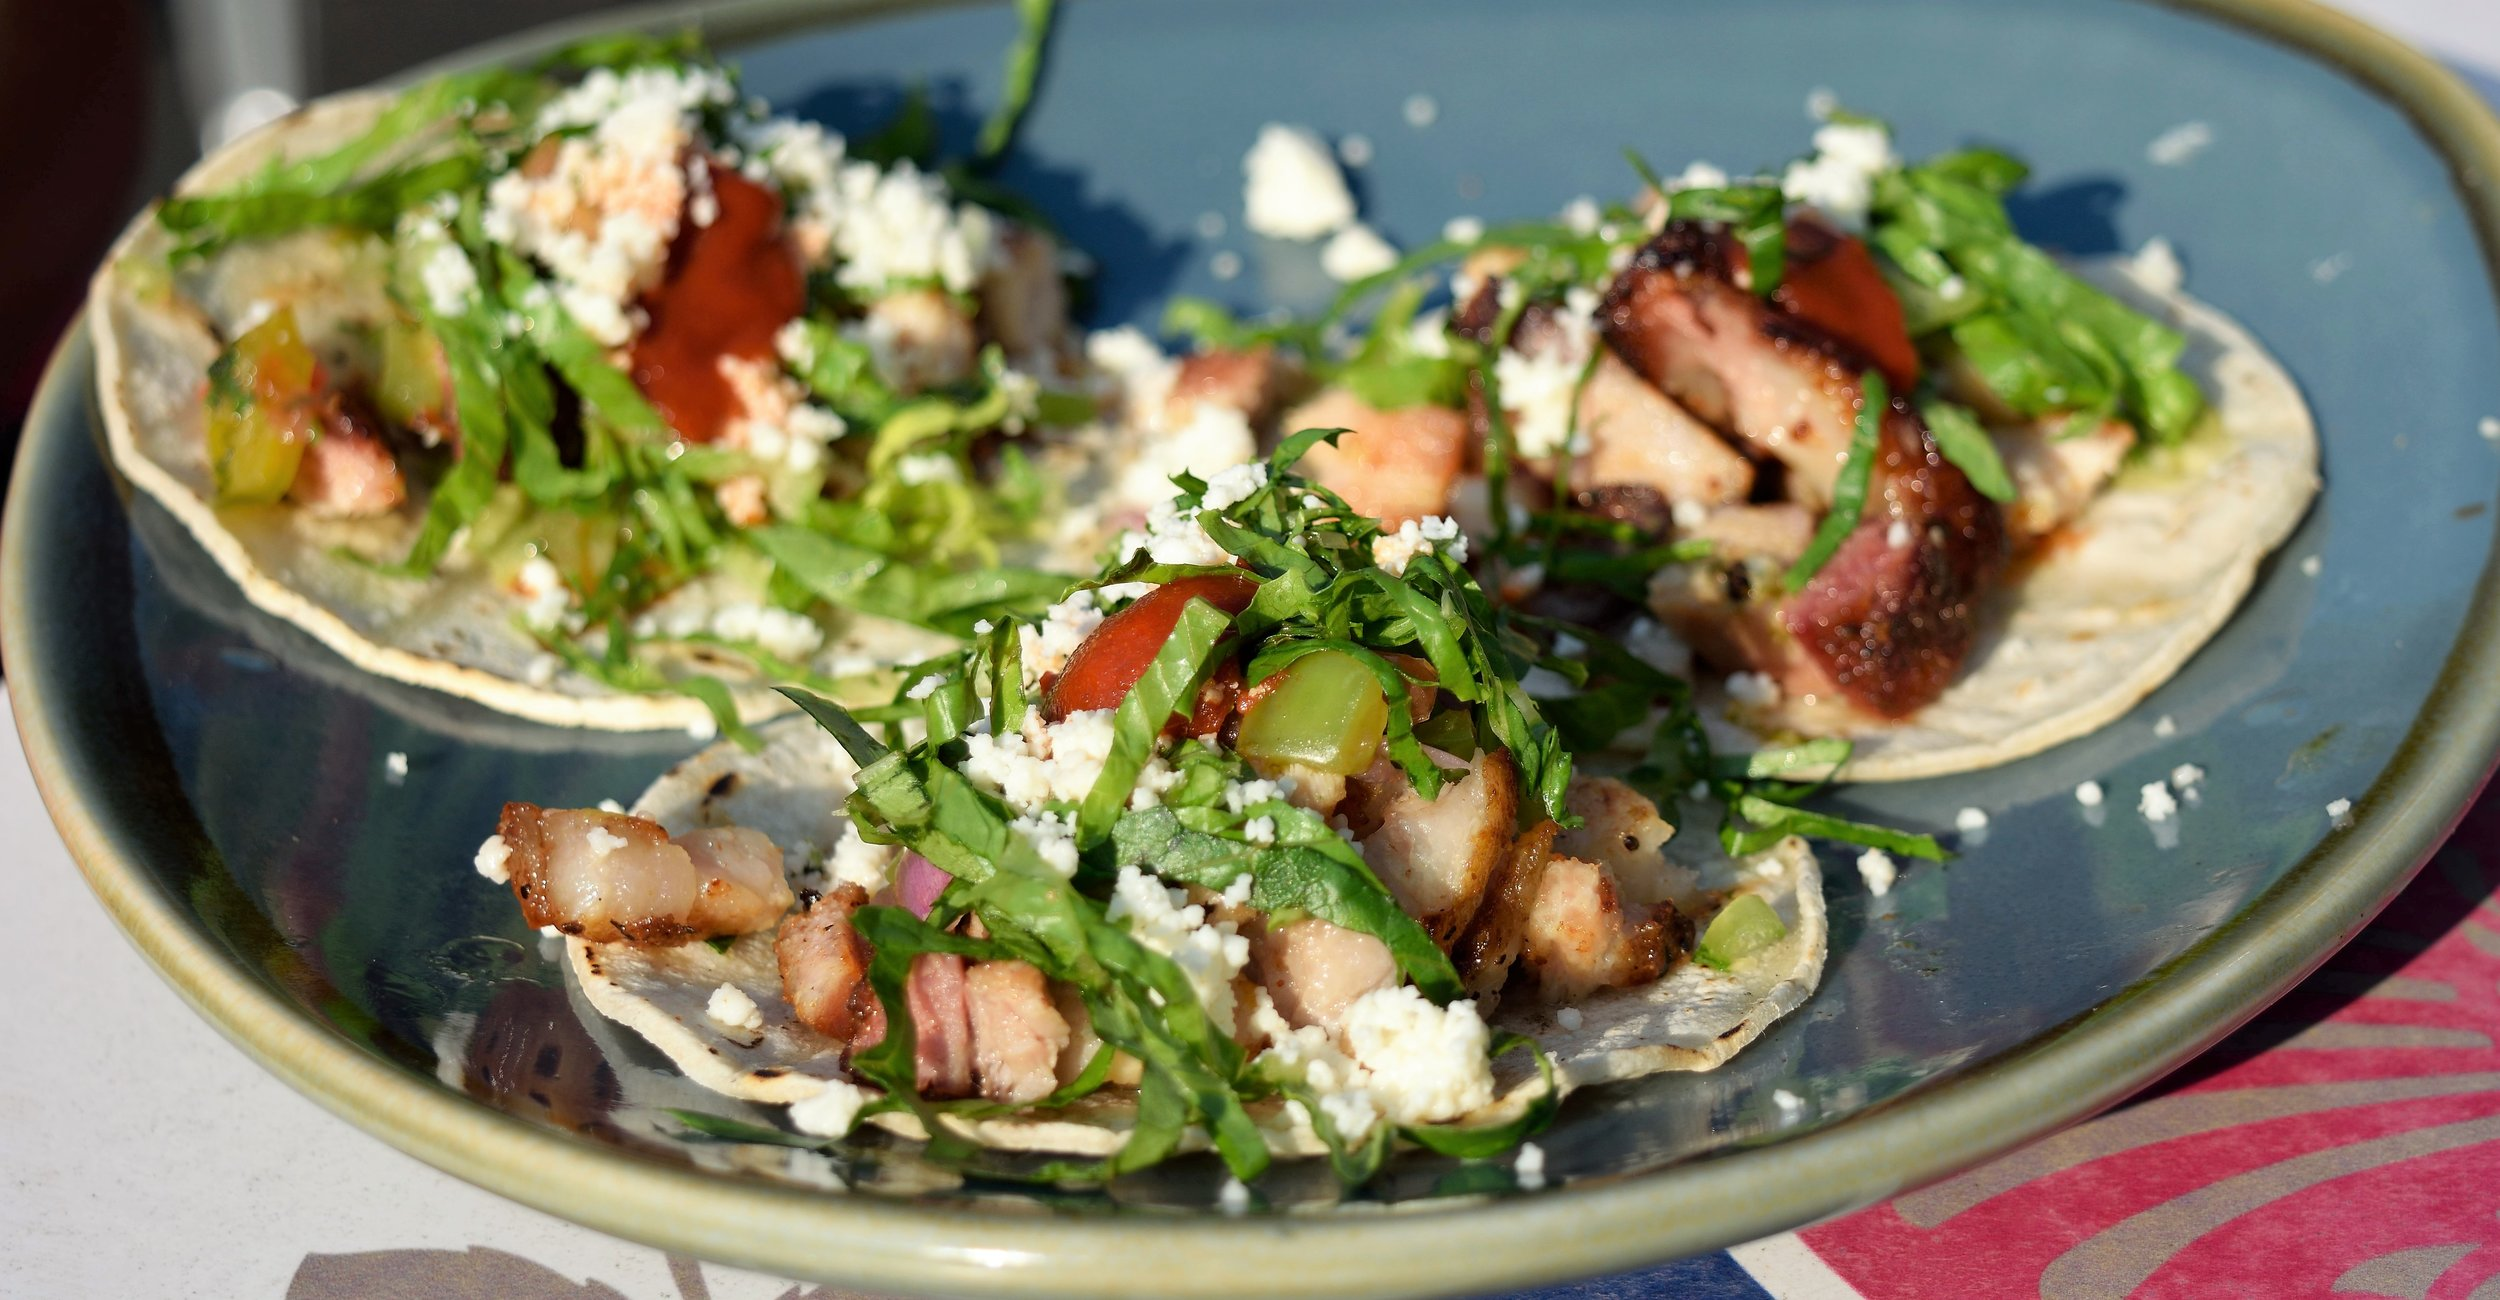 Pork Belly Tacos! Who doesn't like tacos!?